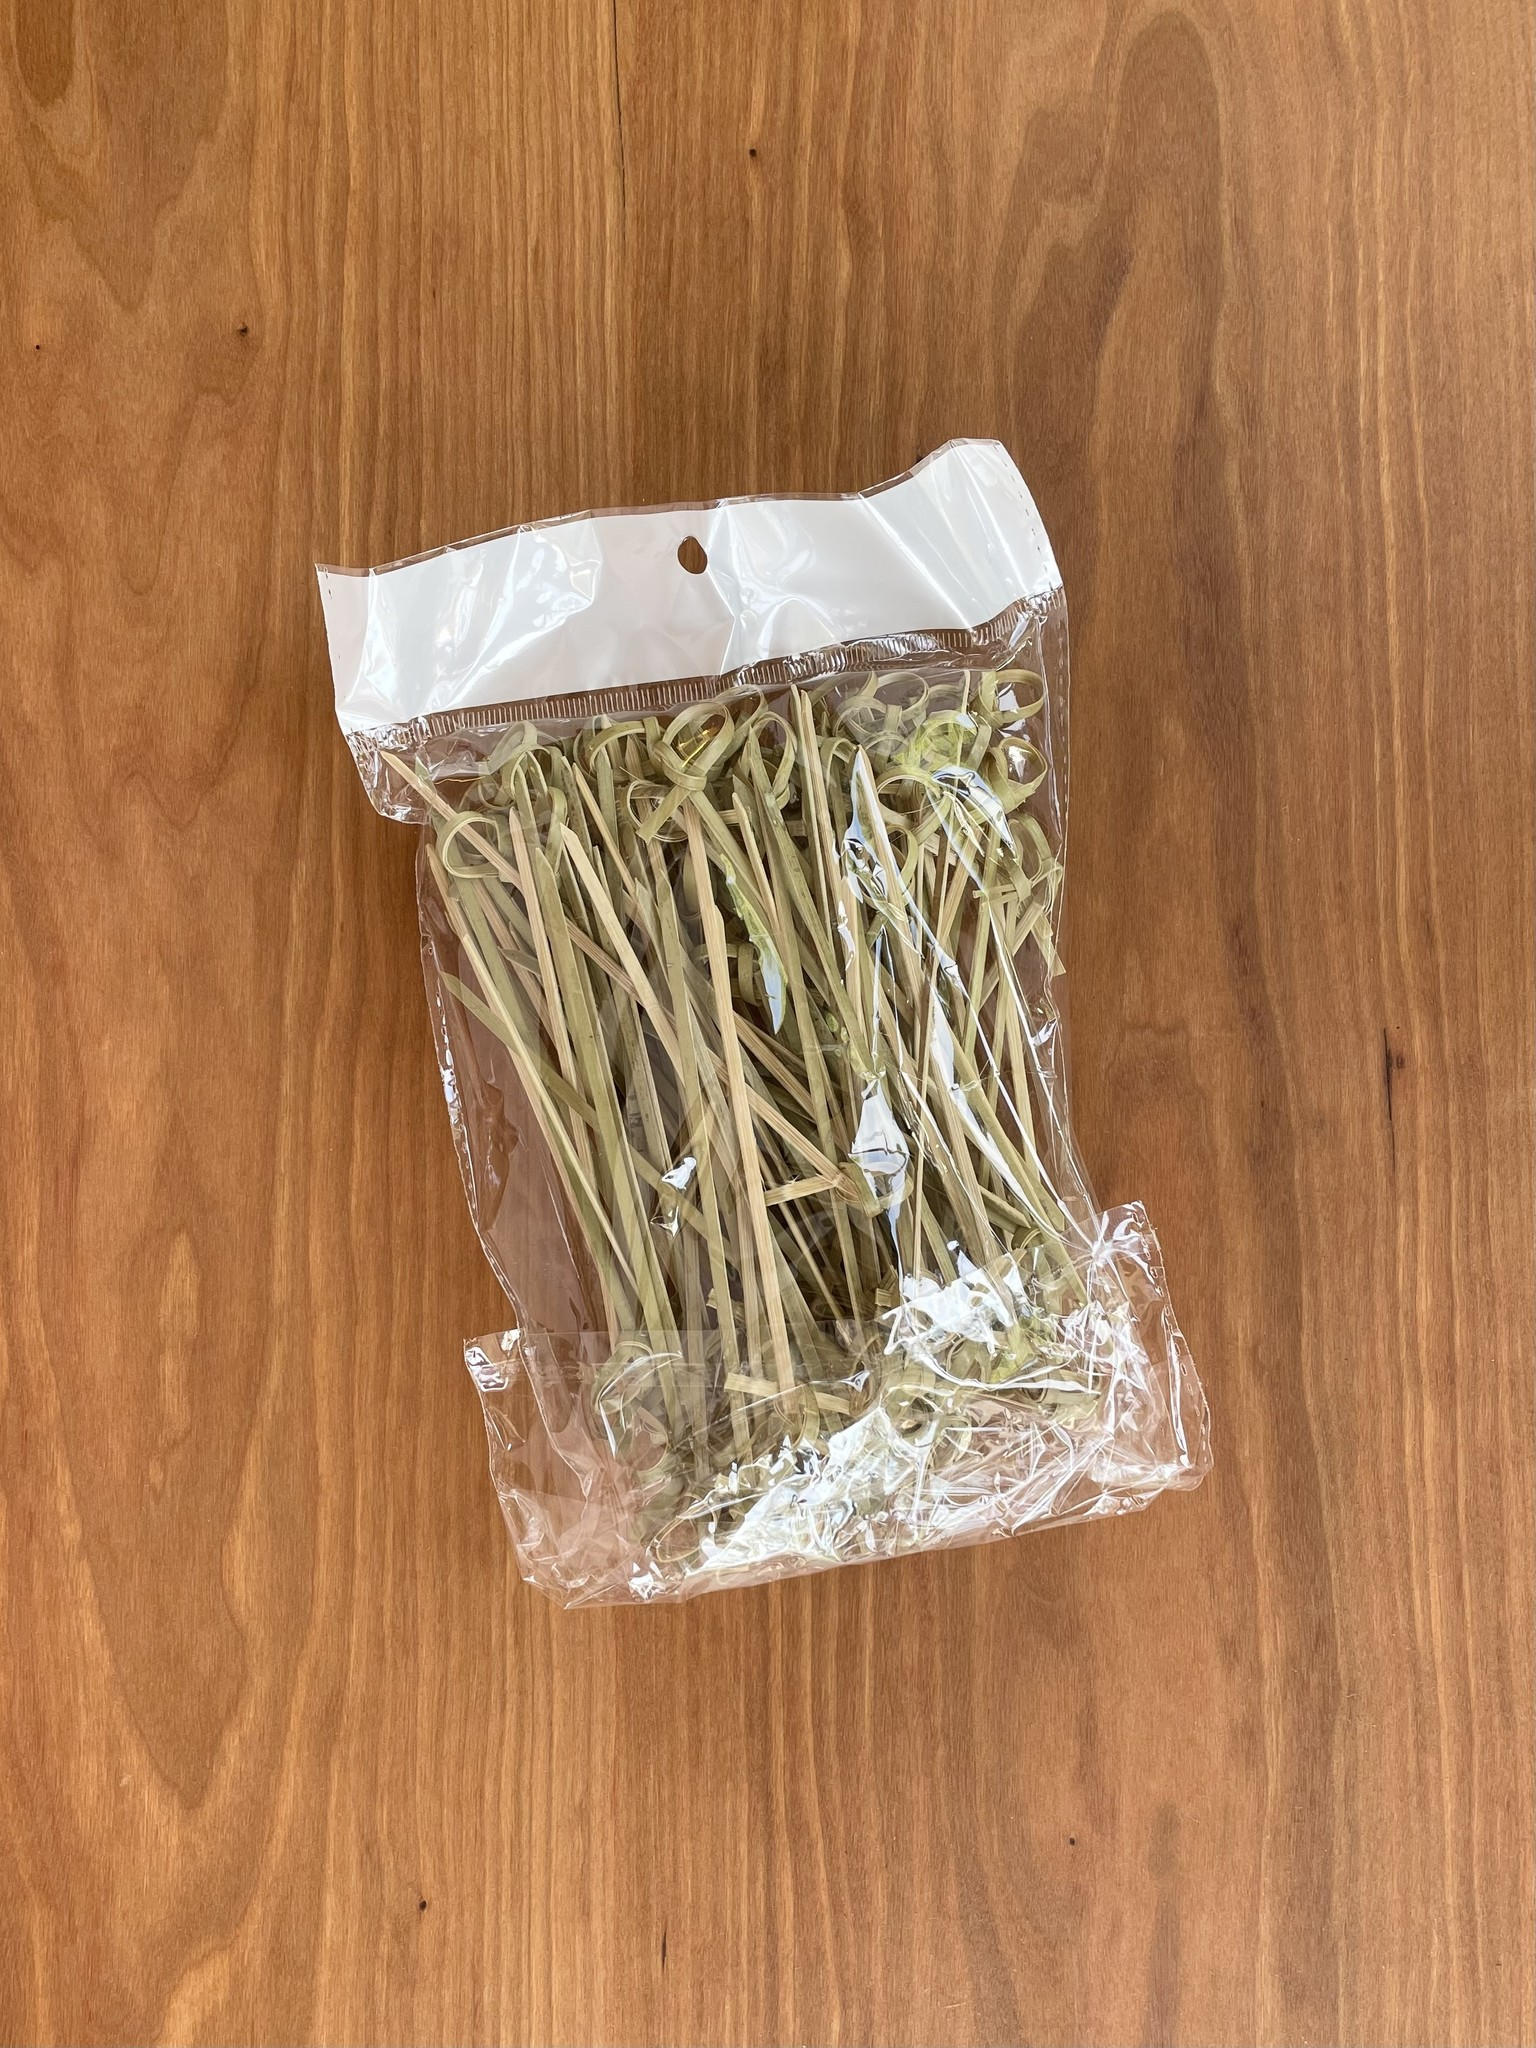 Bamboo Knotted Skewers, 100 Pieces-2